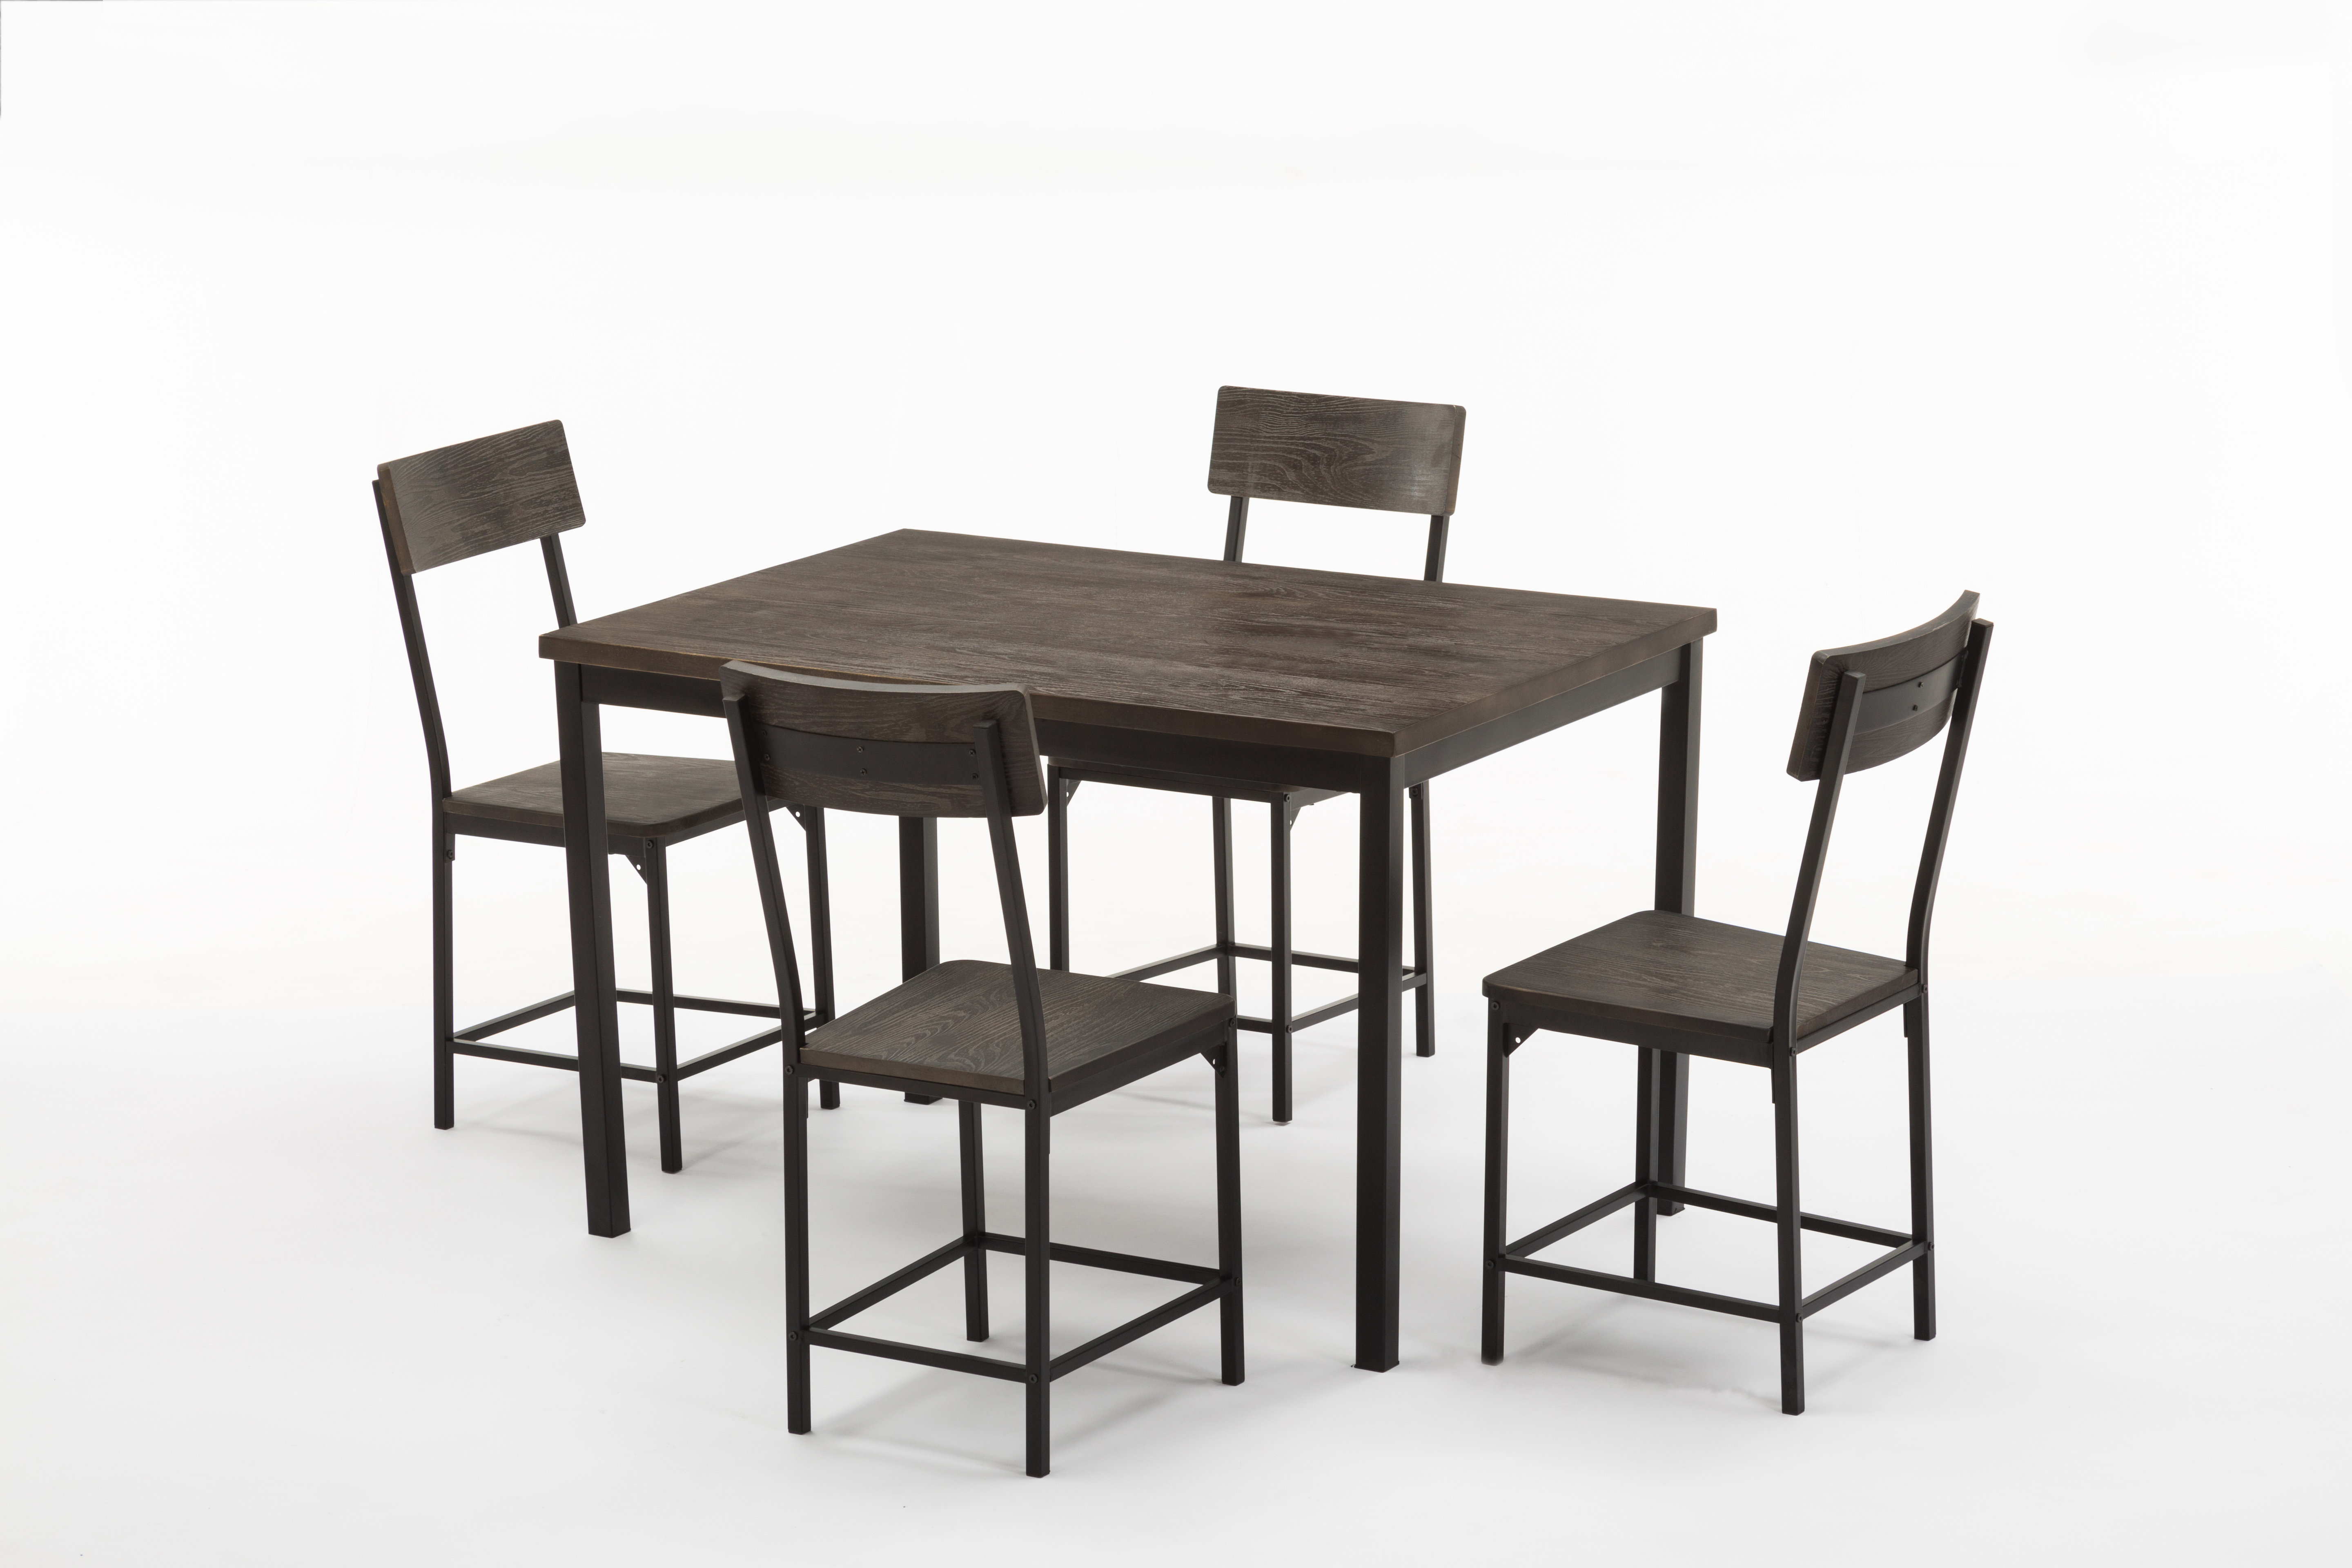 Well Liked Bryson 5 Piece Dining Sets Regarding Bushman 5 Piece Dining Set (View 19 of 25)